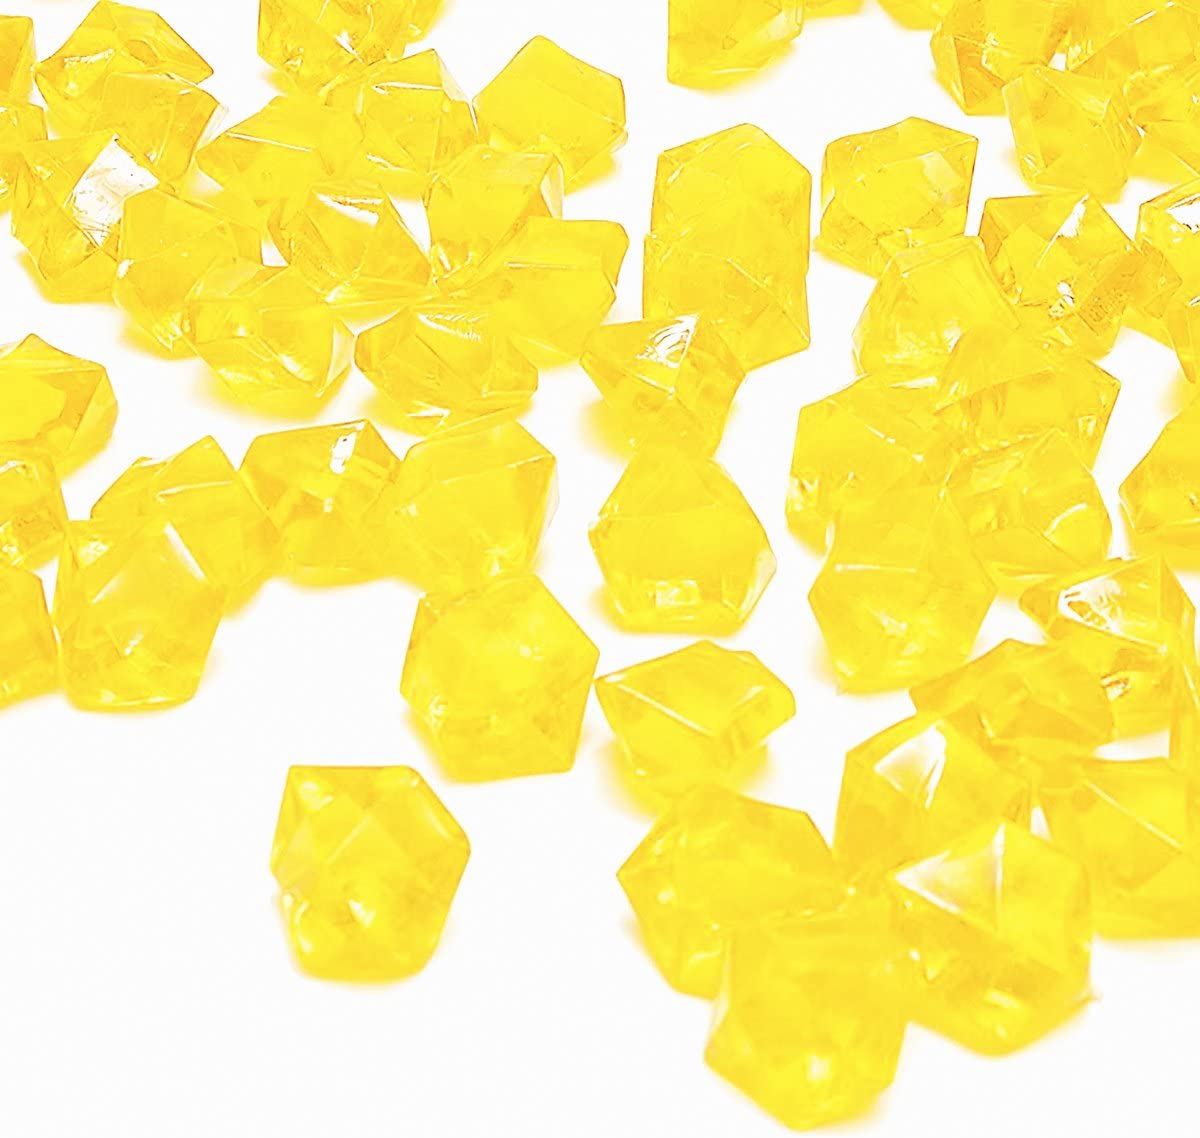 Yellow Fake Crushed Ice Rocks, 150 PCS Fake Diamonds Plastic Ice Cubes Acrylic Clear Ice Rock Diamond Crystals Fake Ice Cubes Gems for Home Decoration Wedding Display Vase Fillers by DomeStar